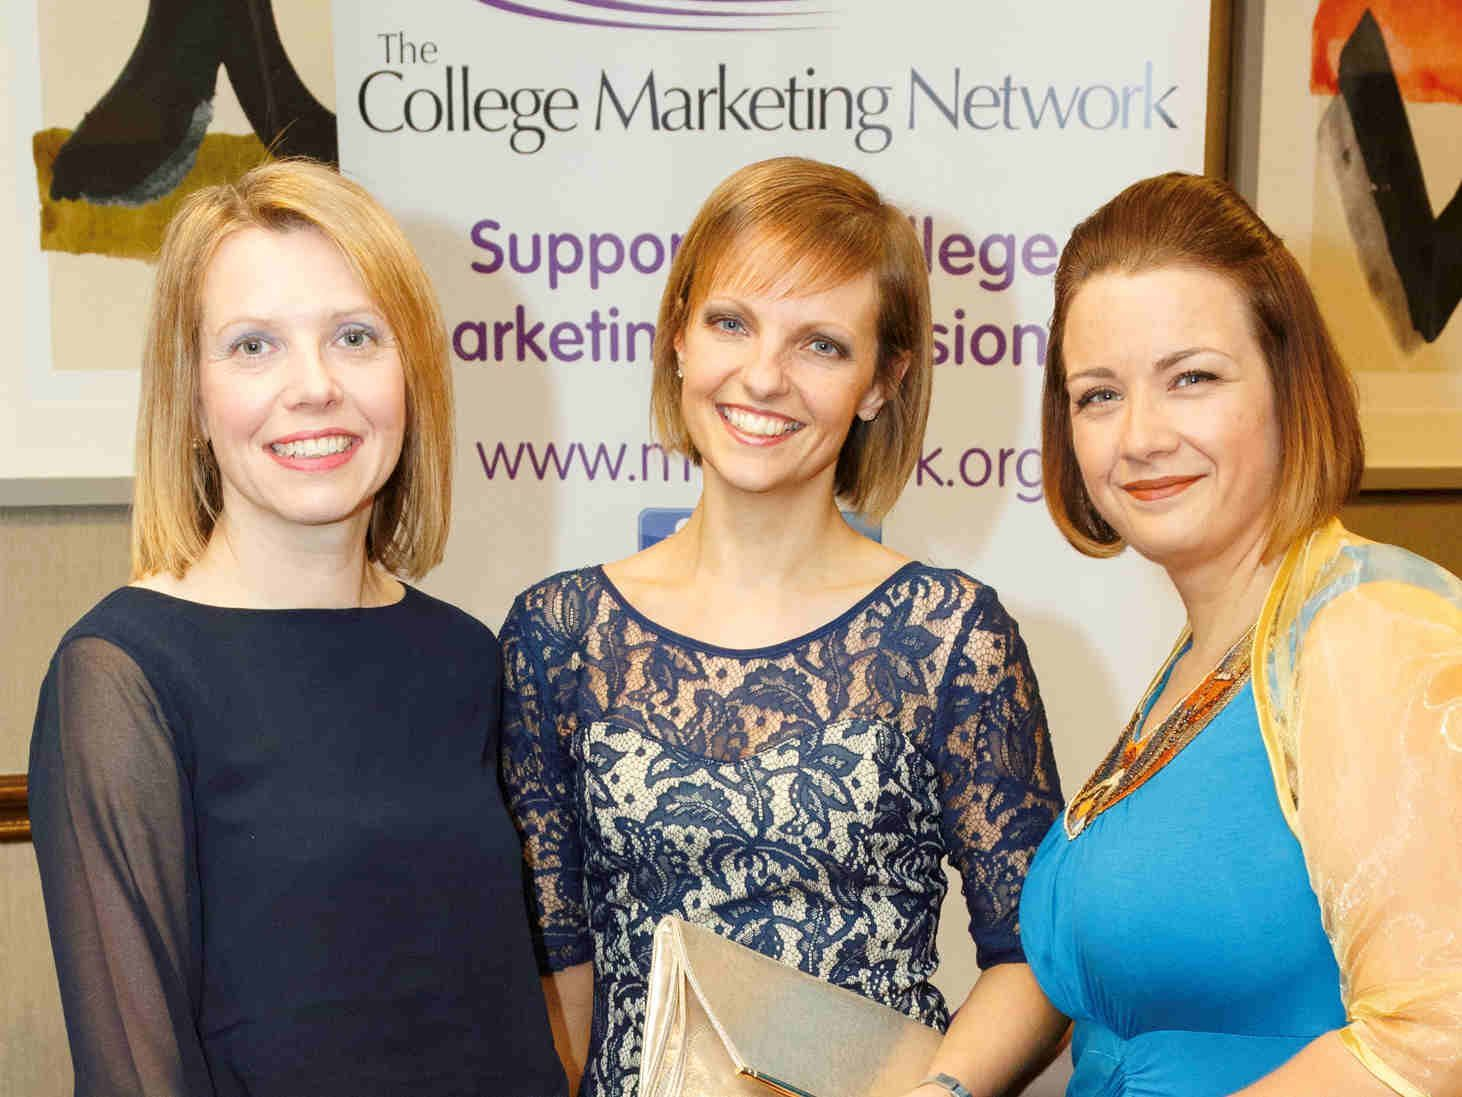 FE First Awards 2018, College Marketing Network, Exhibitors' reception